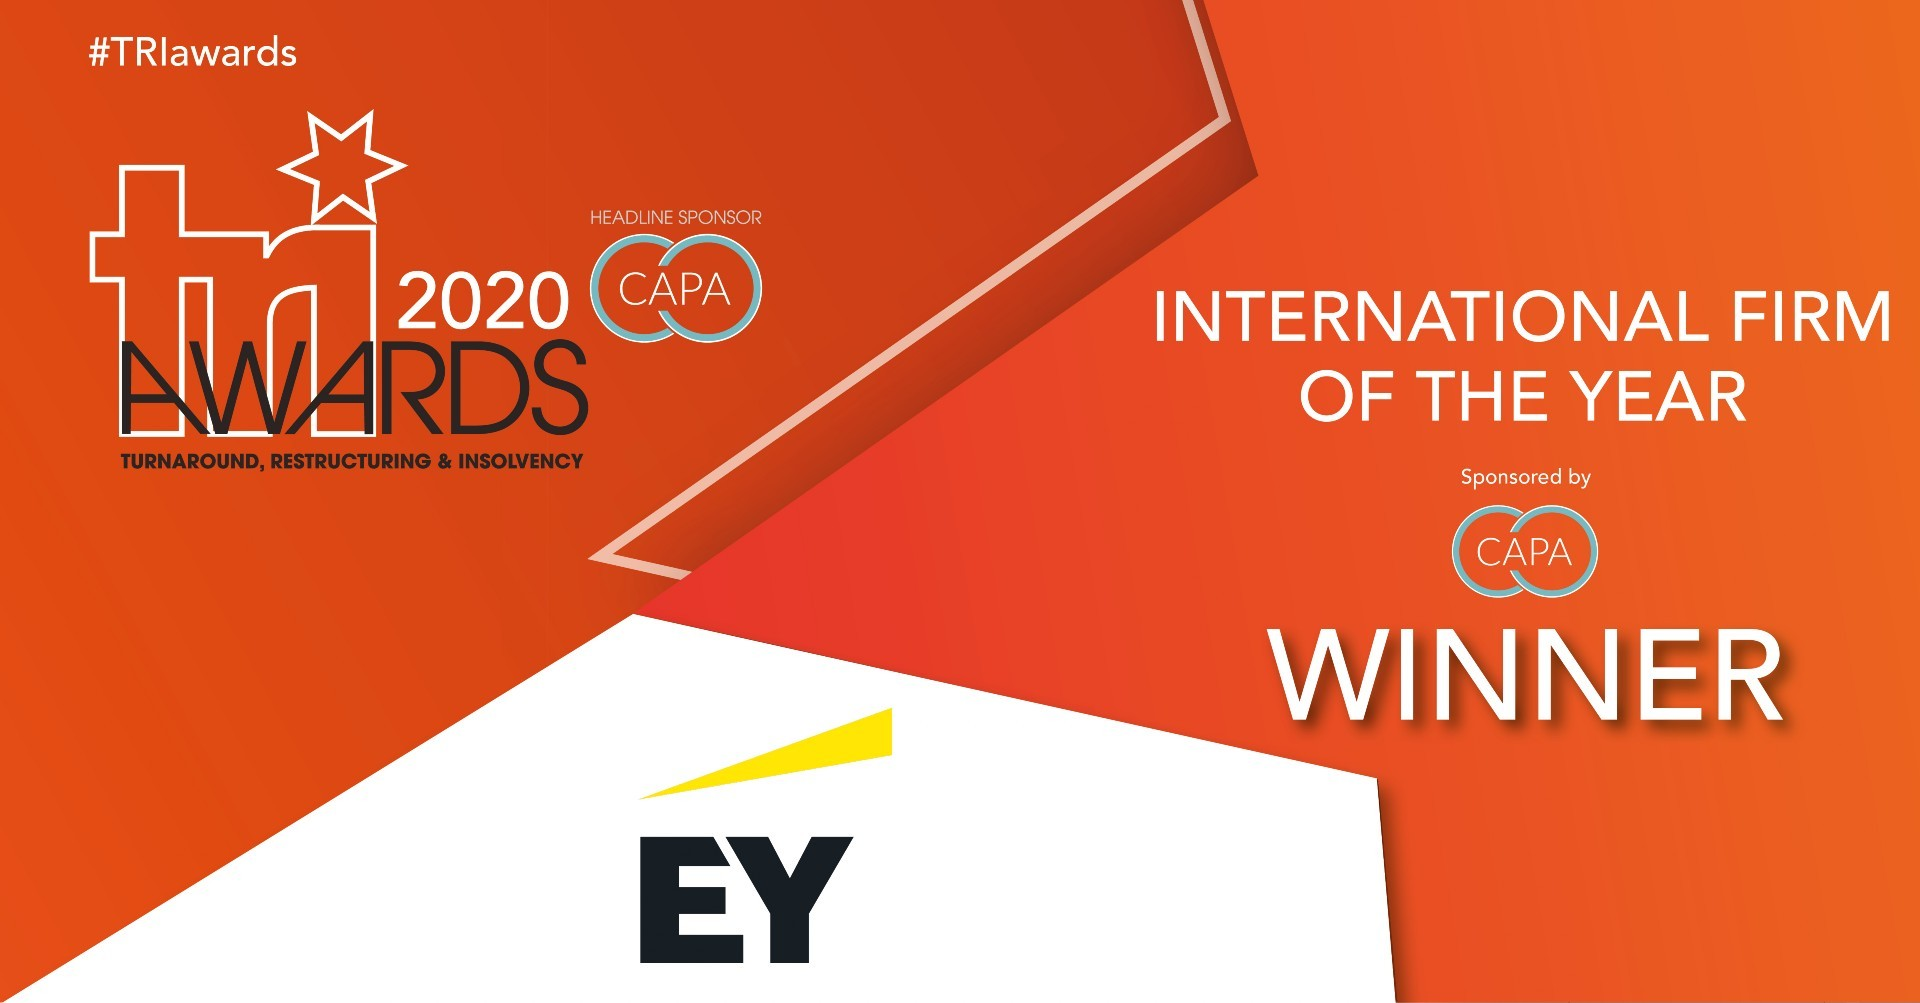 Image for 2020 TRI Awards - International Firm of the Year